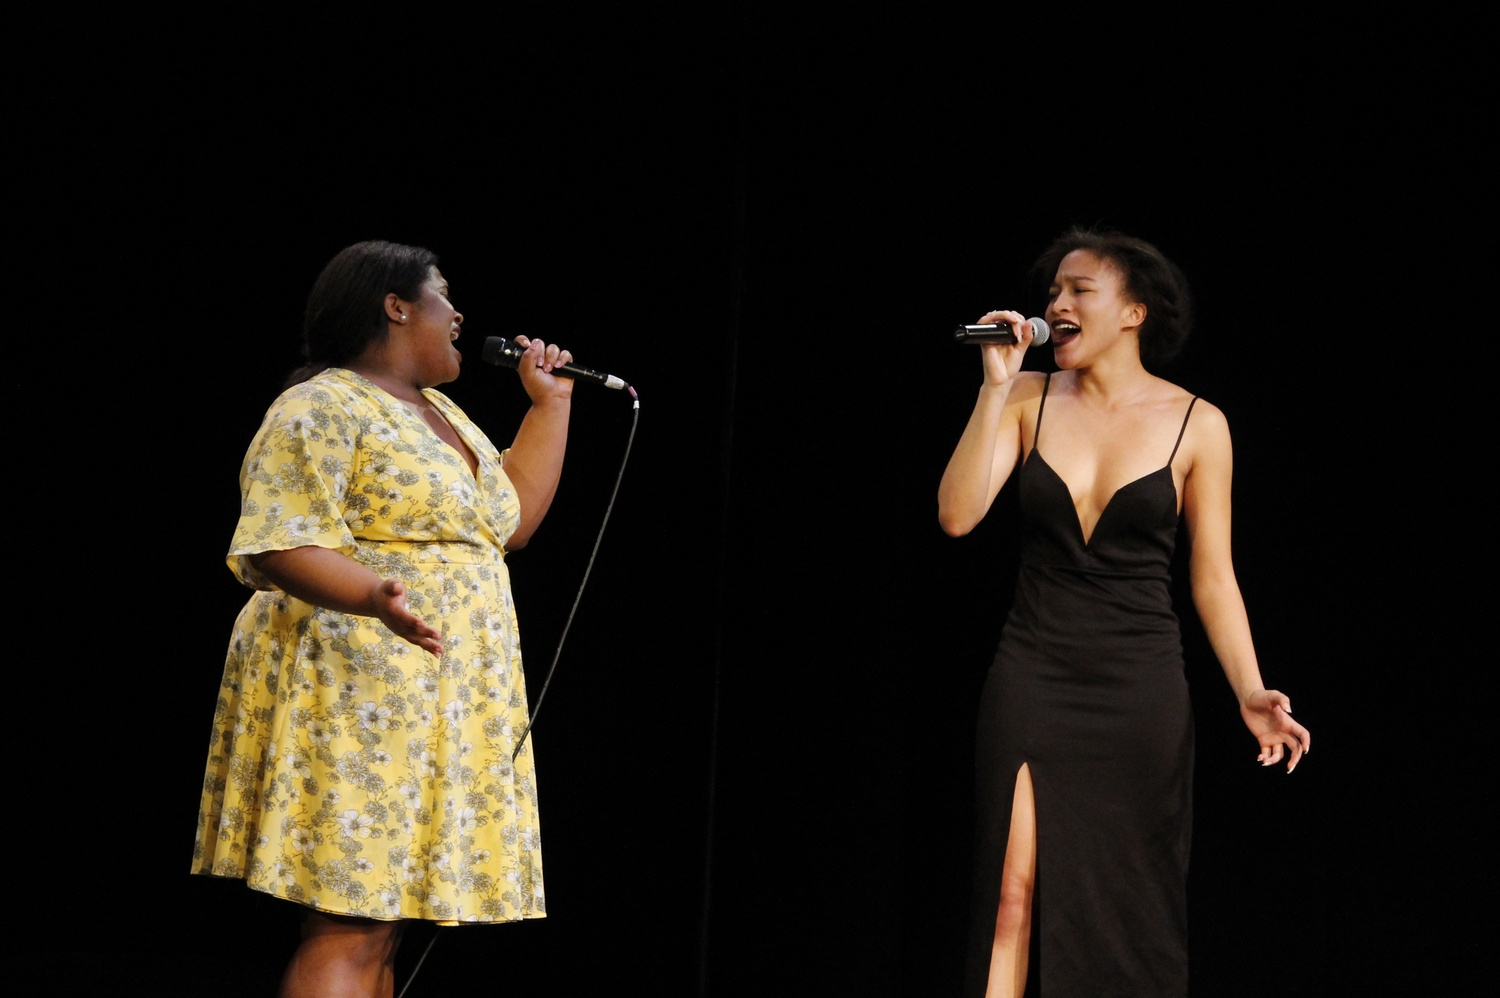 Samyra C. Miller '21 and Asia T. Stewart '18 sing during the No More Names concert Tuesday evening at The Agassiz Theater in Radcliffe Yard.